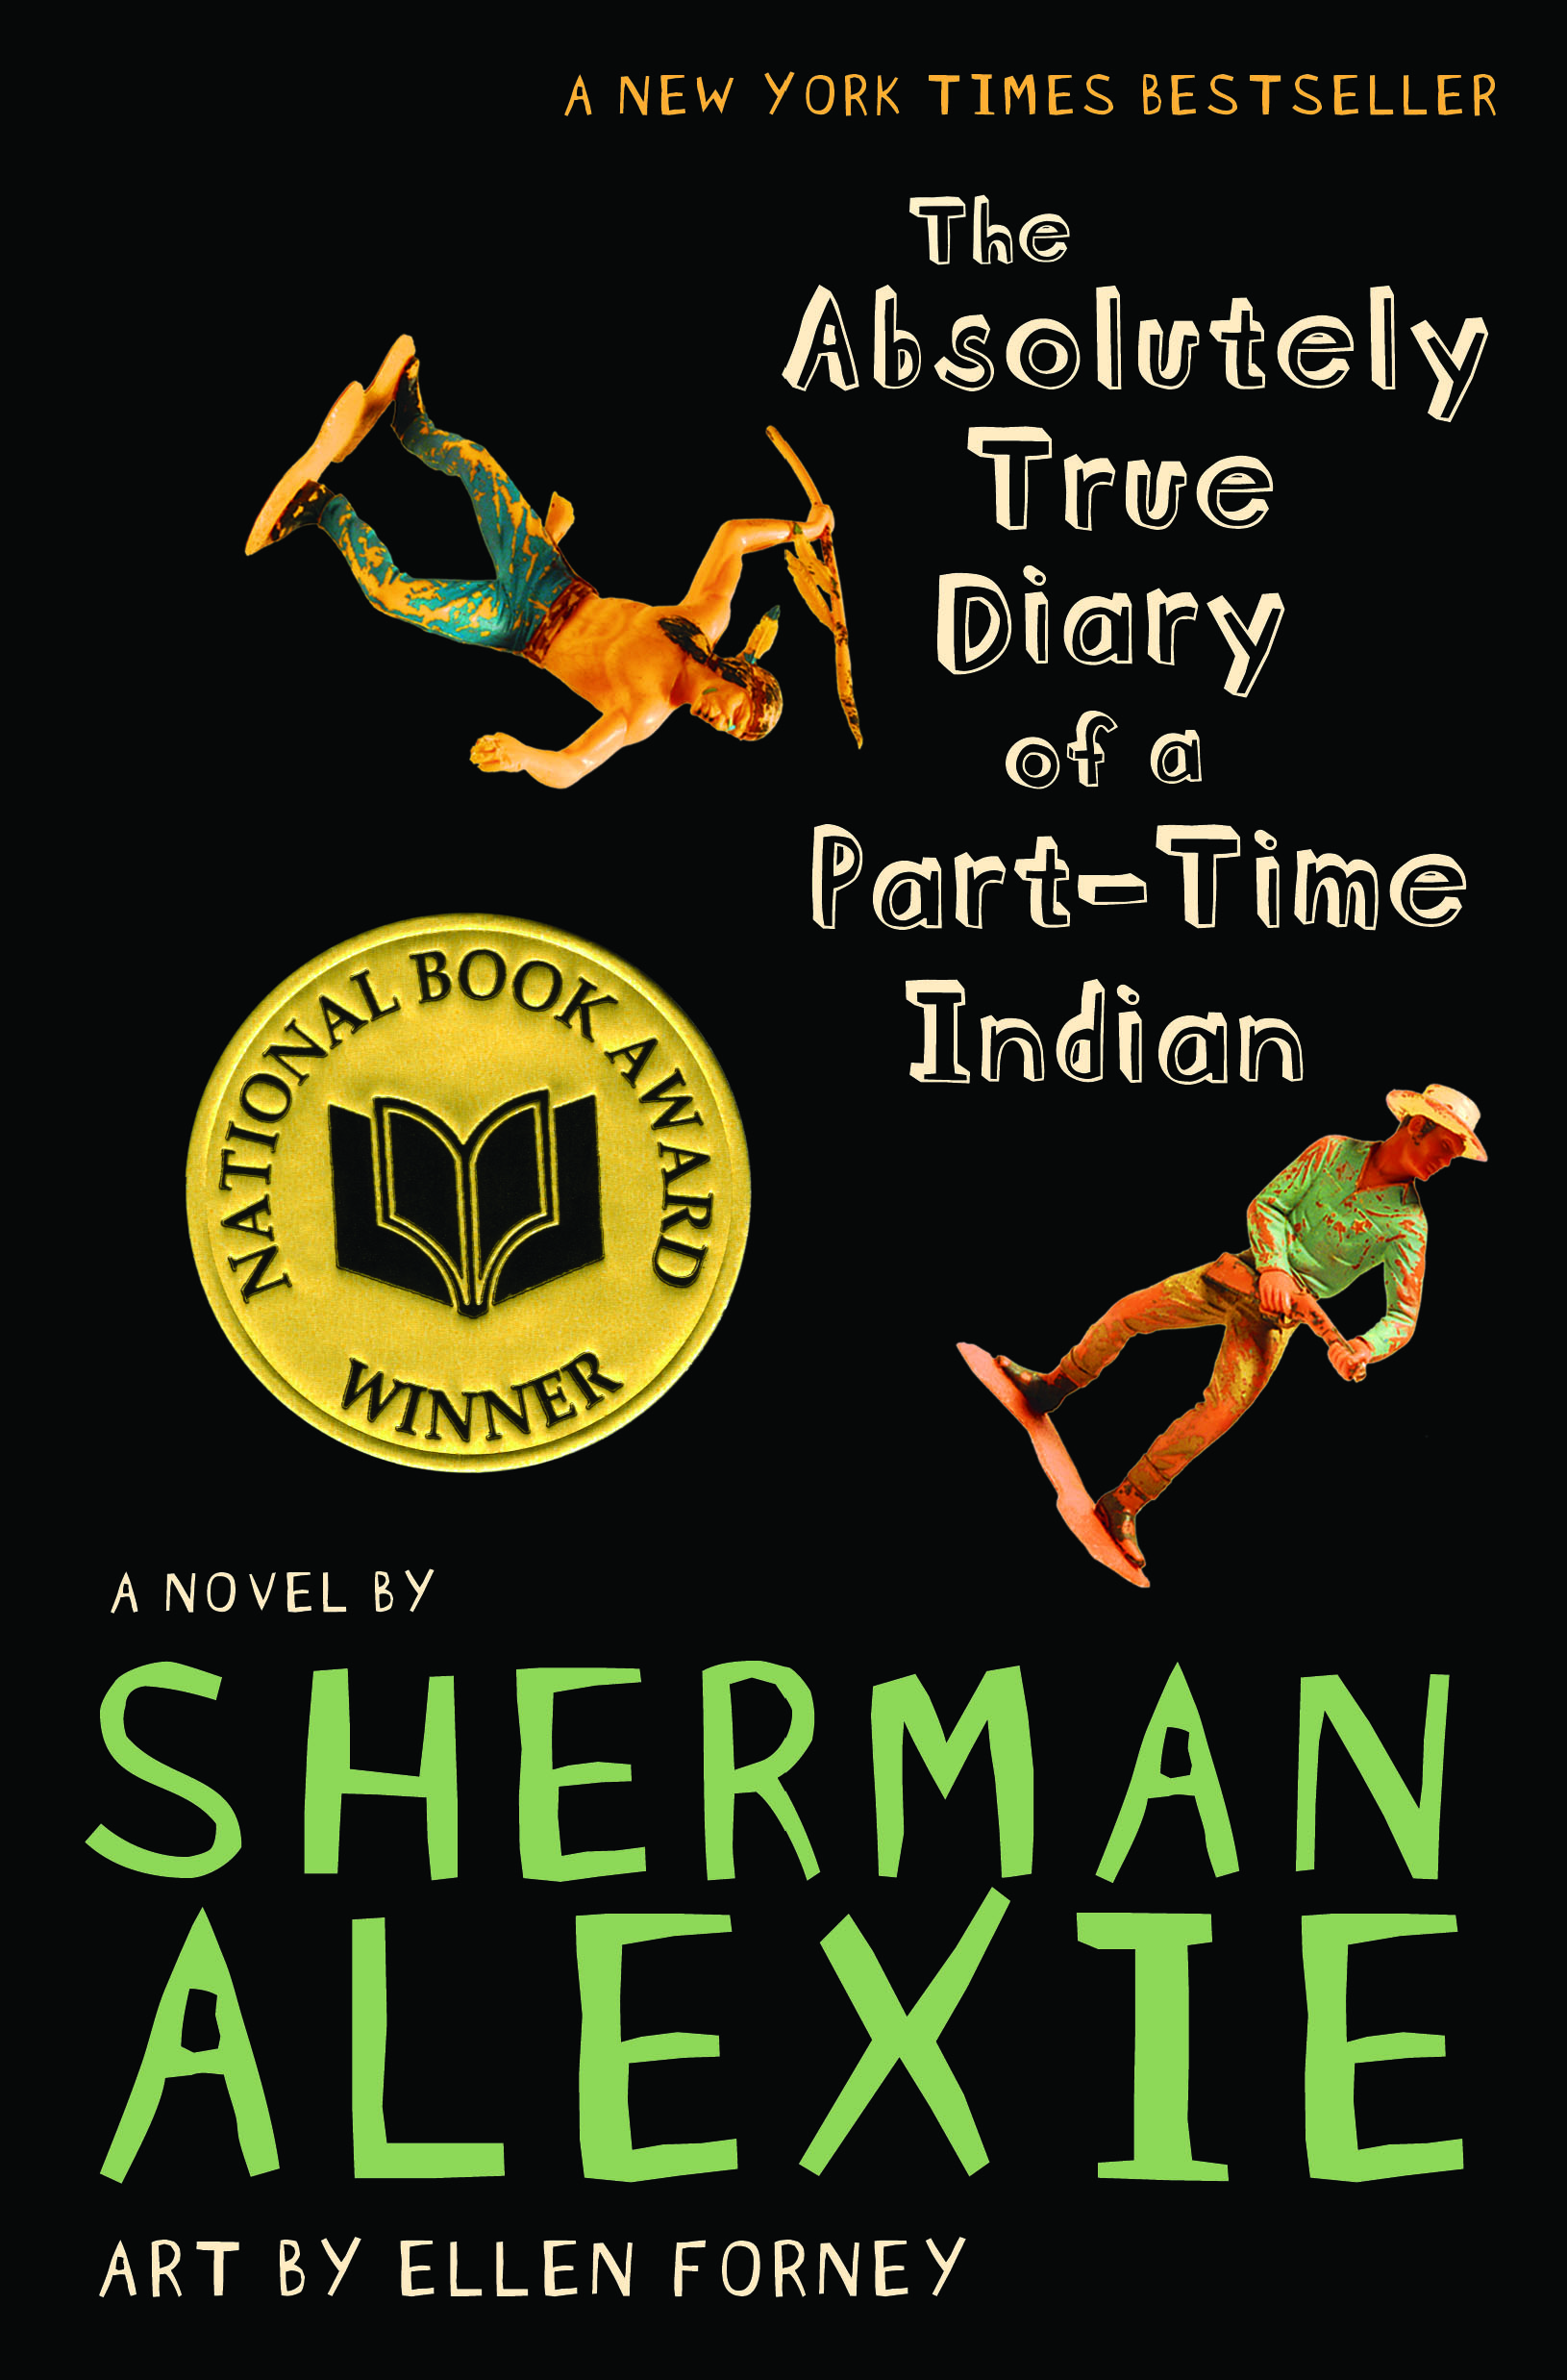 The Absolutely True Diary of a Part-Time Indian by Sherman Alexie, art by  Ellen Forney   BookDragon